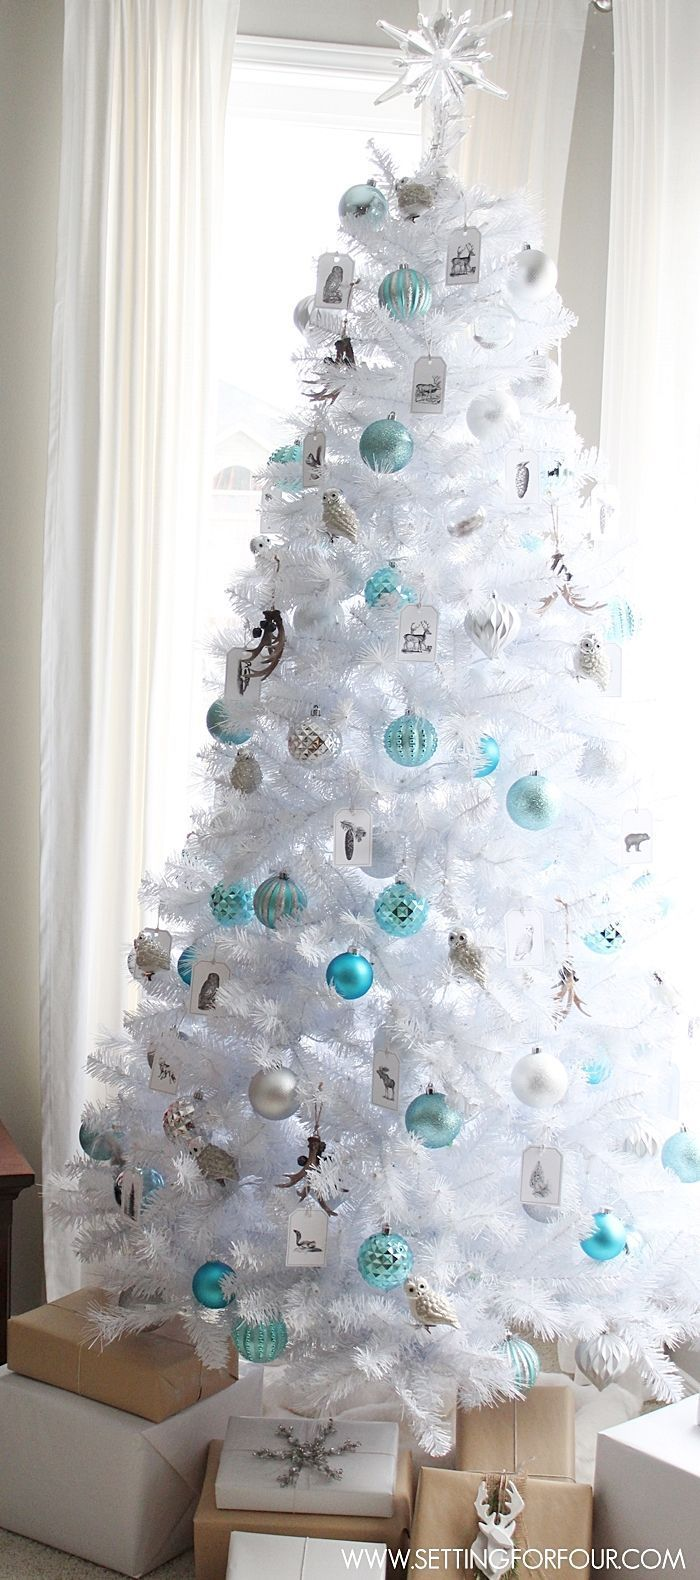 Why do we put decorations on a christmas tree - See How I Decorated My Winter Woodland Glam White Christmas Tree For The Holidays Diy